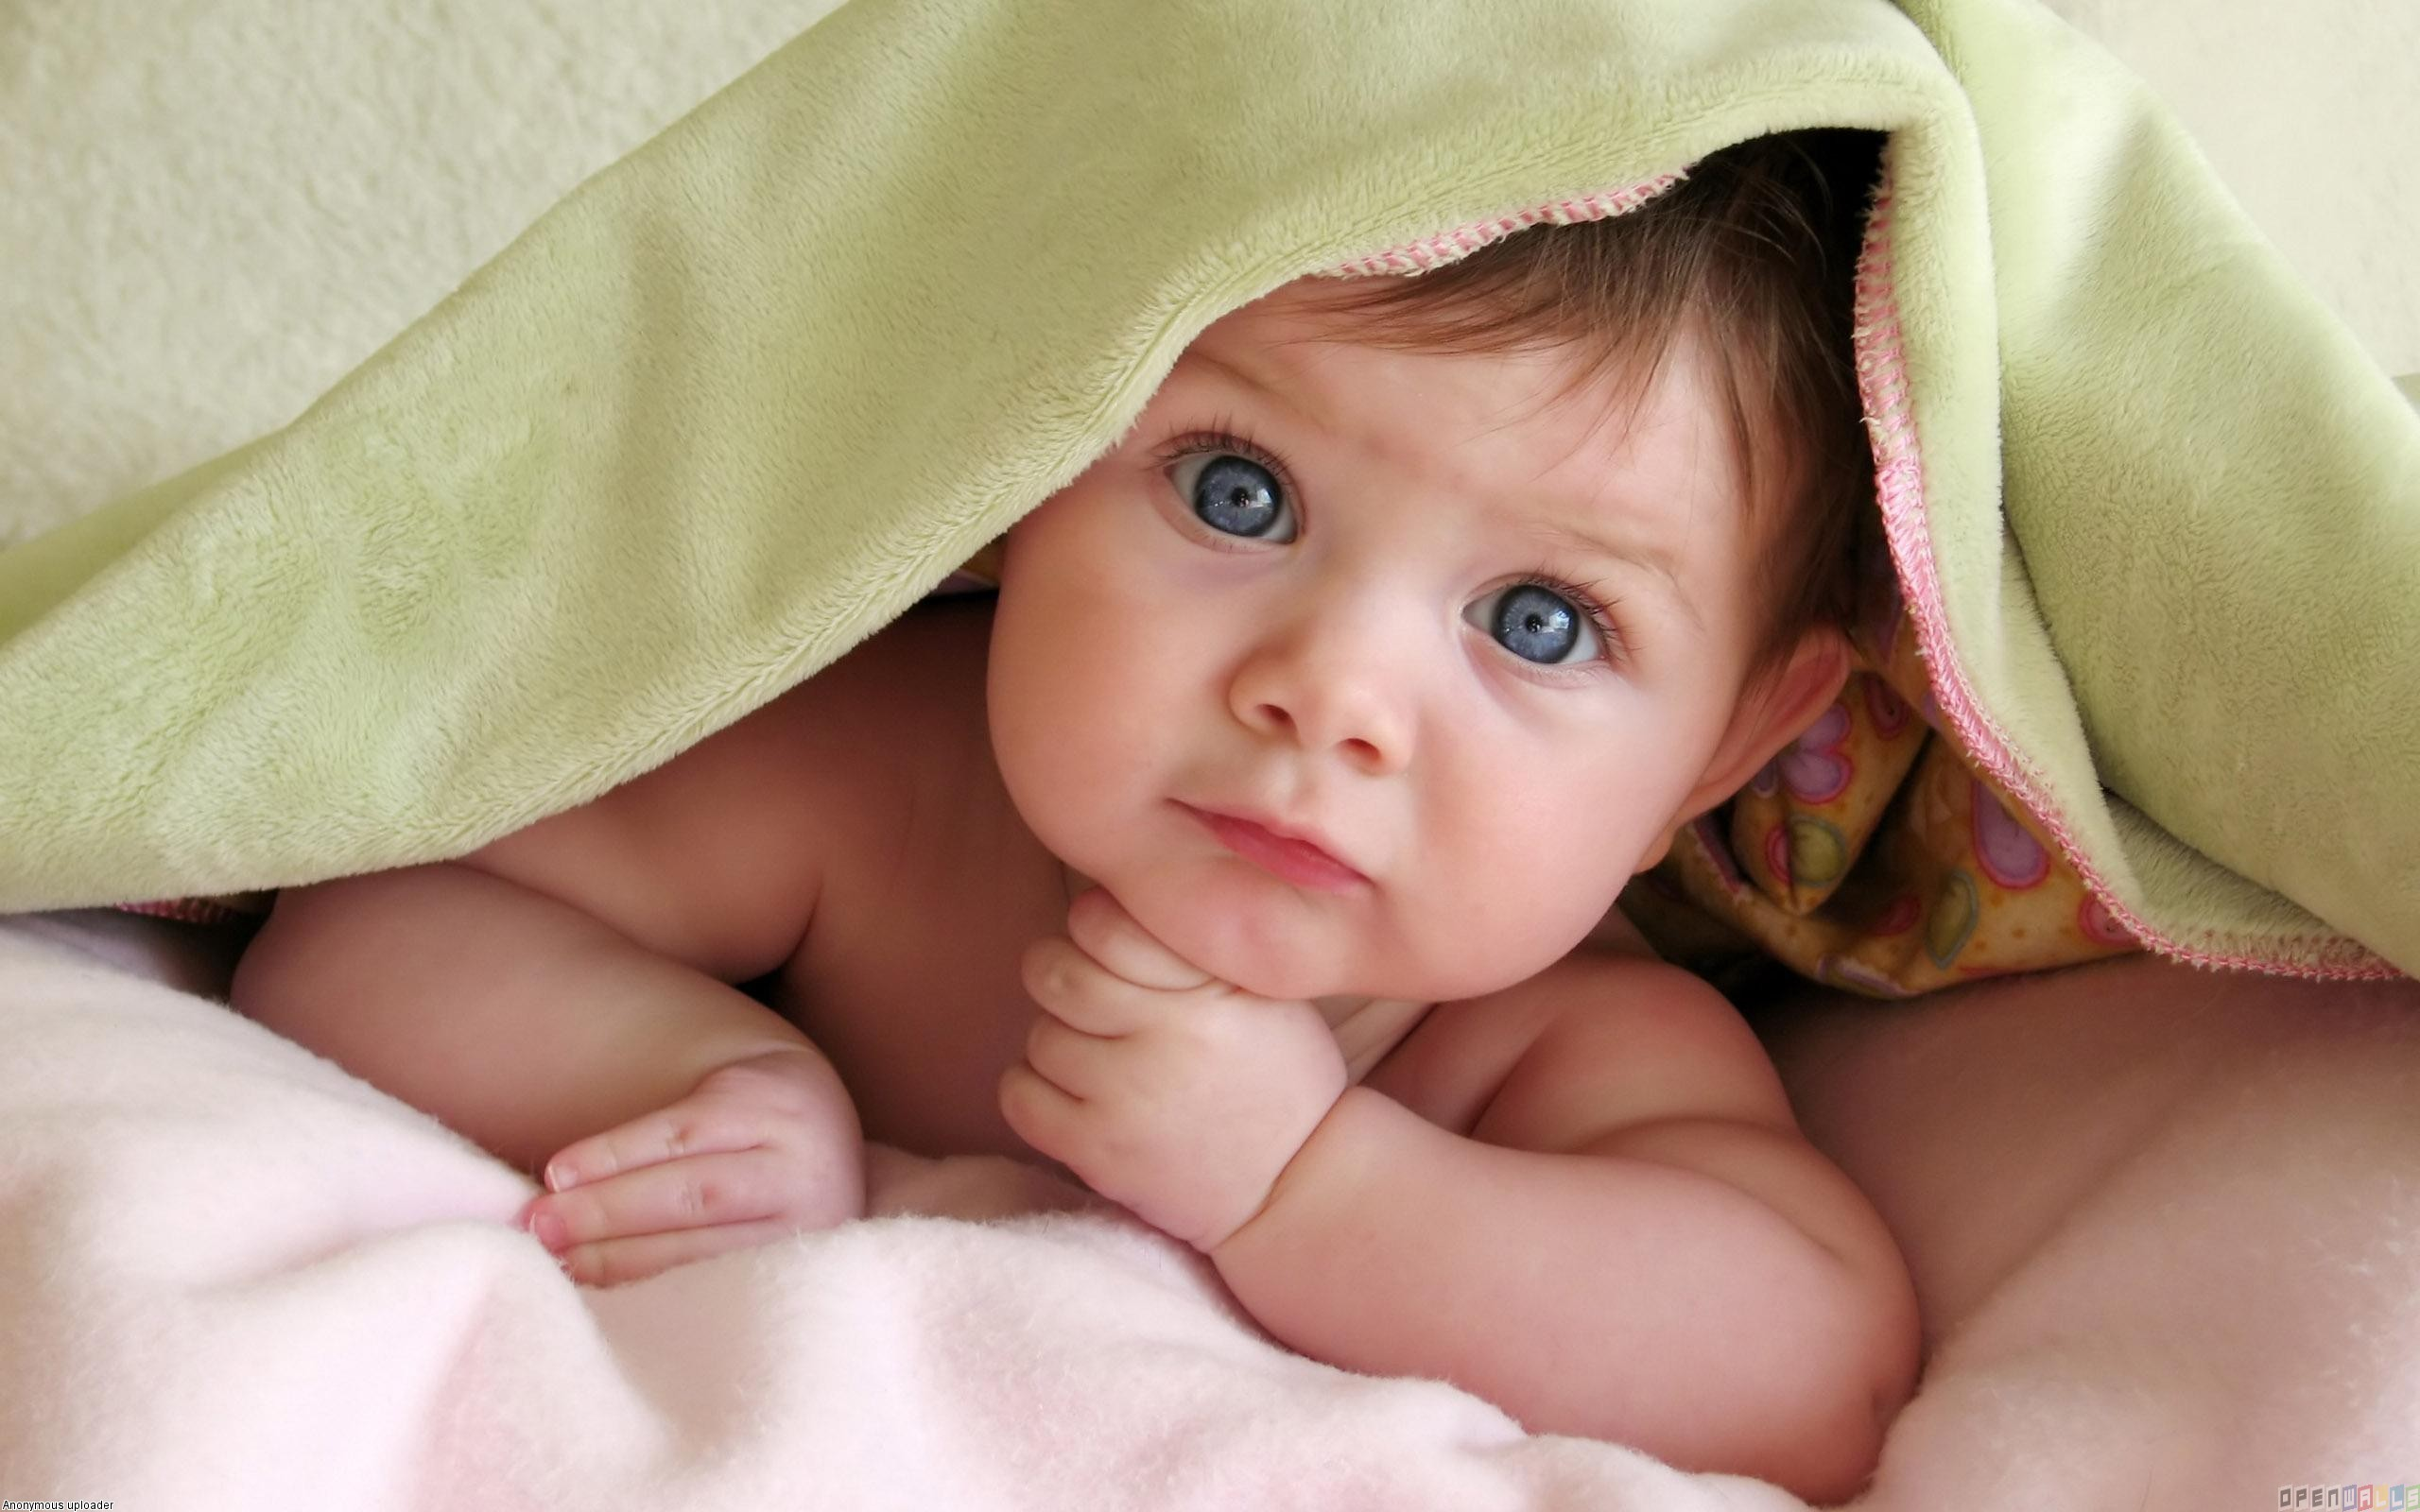 free photo: cute baby - young, smile, cute - non-commercial - free